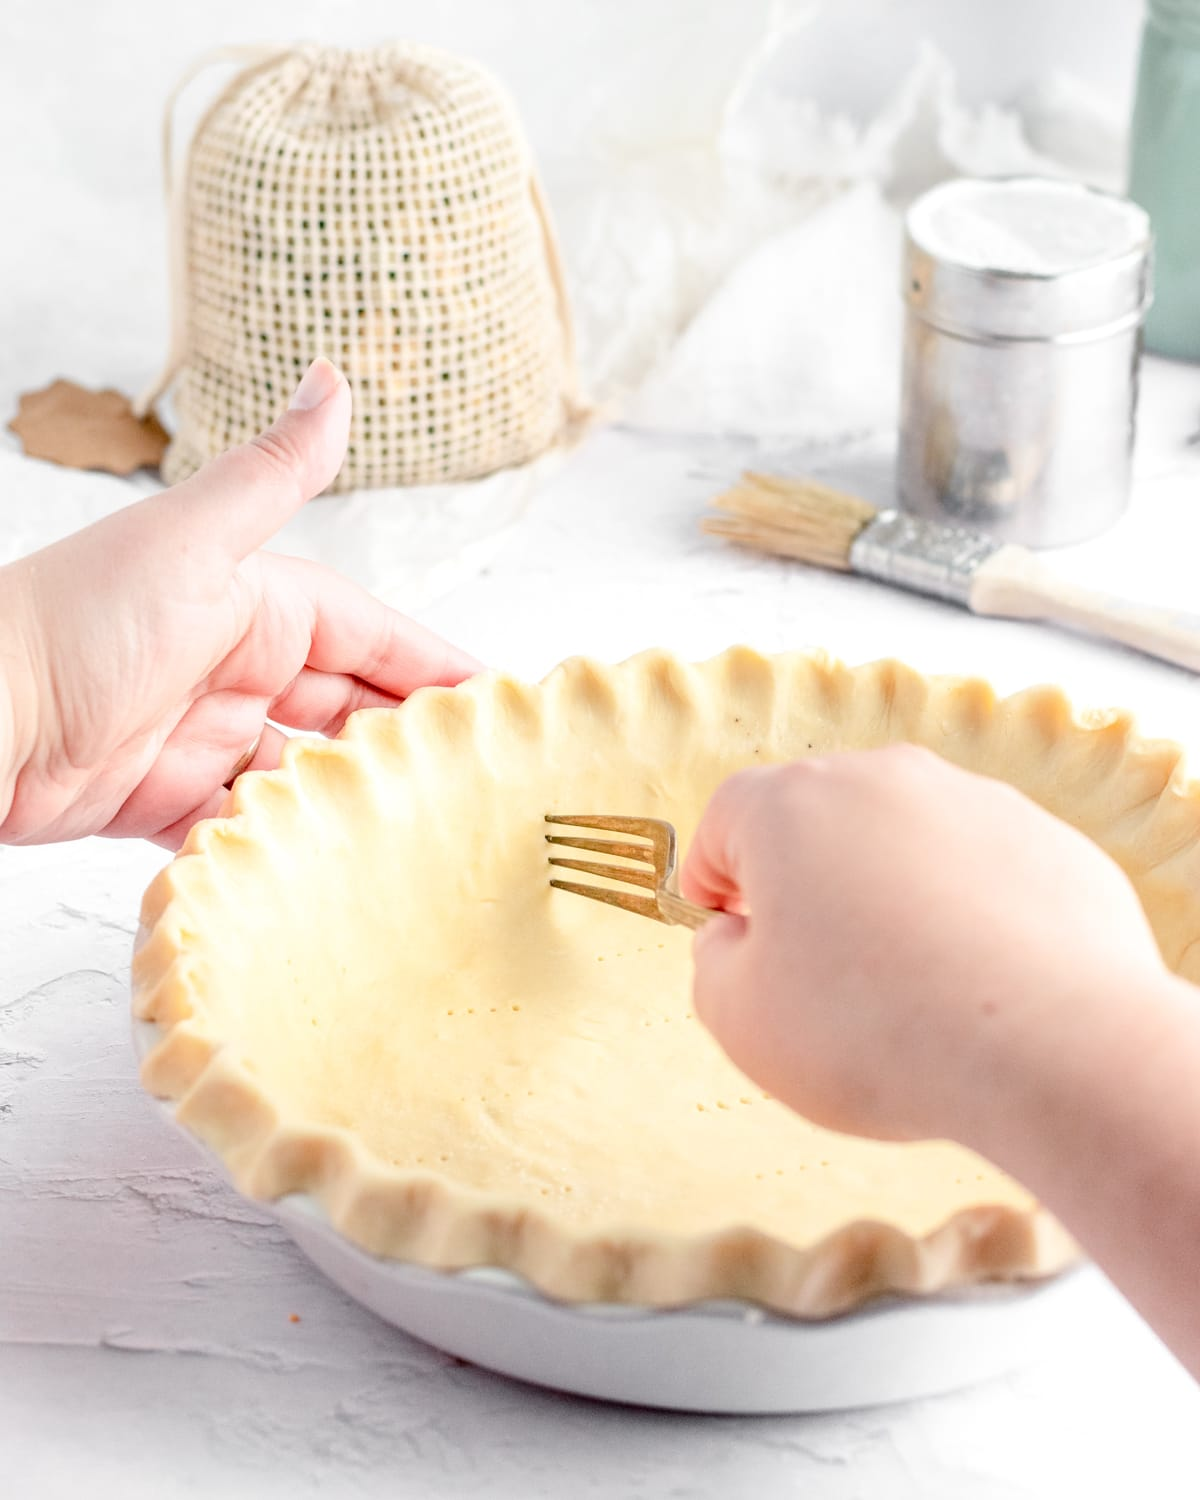 docking a pie crust to prevent bubbles